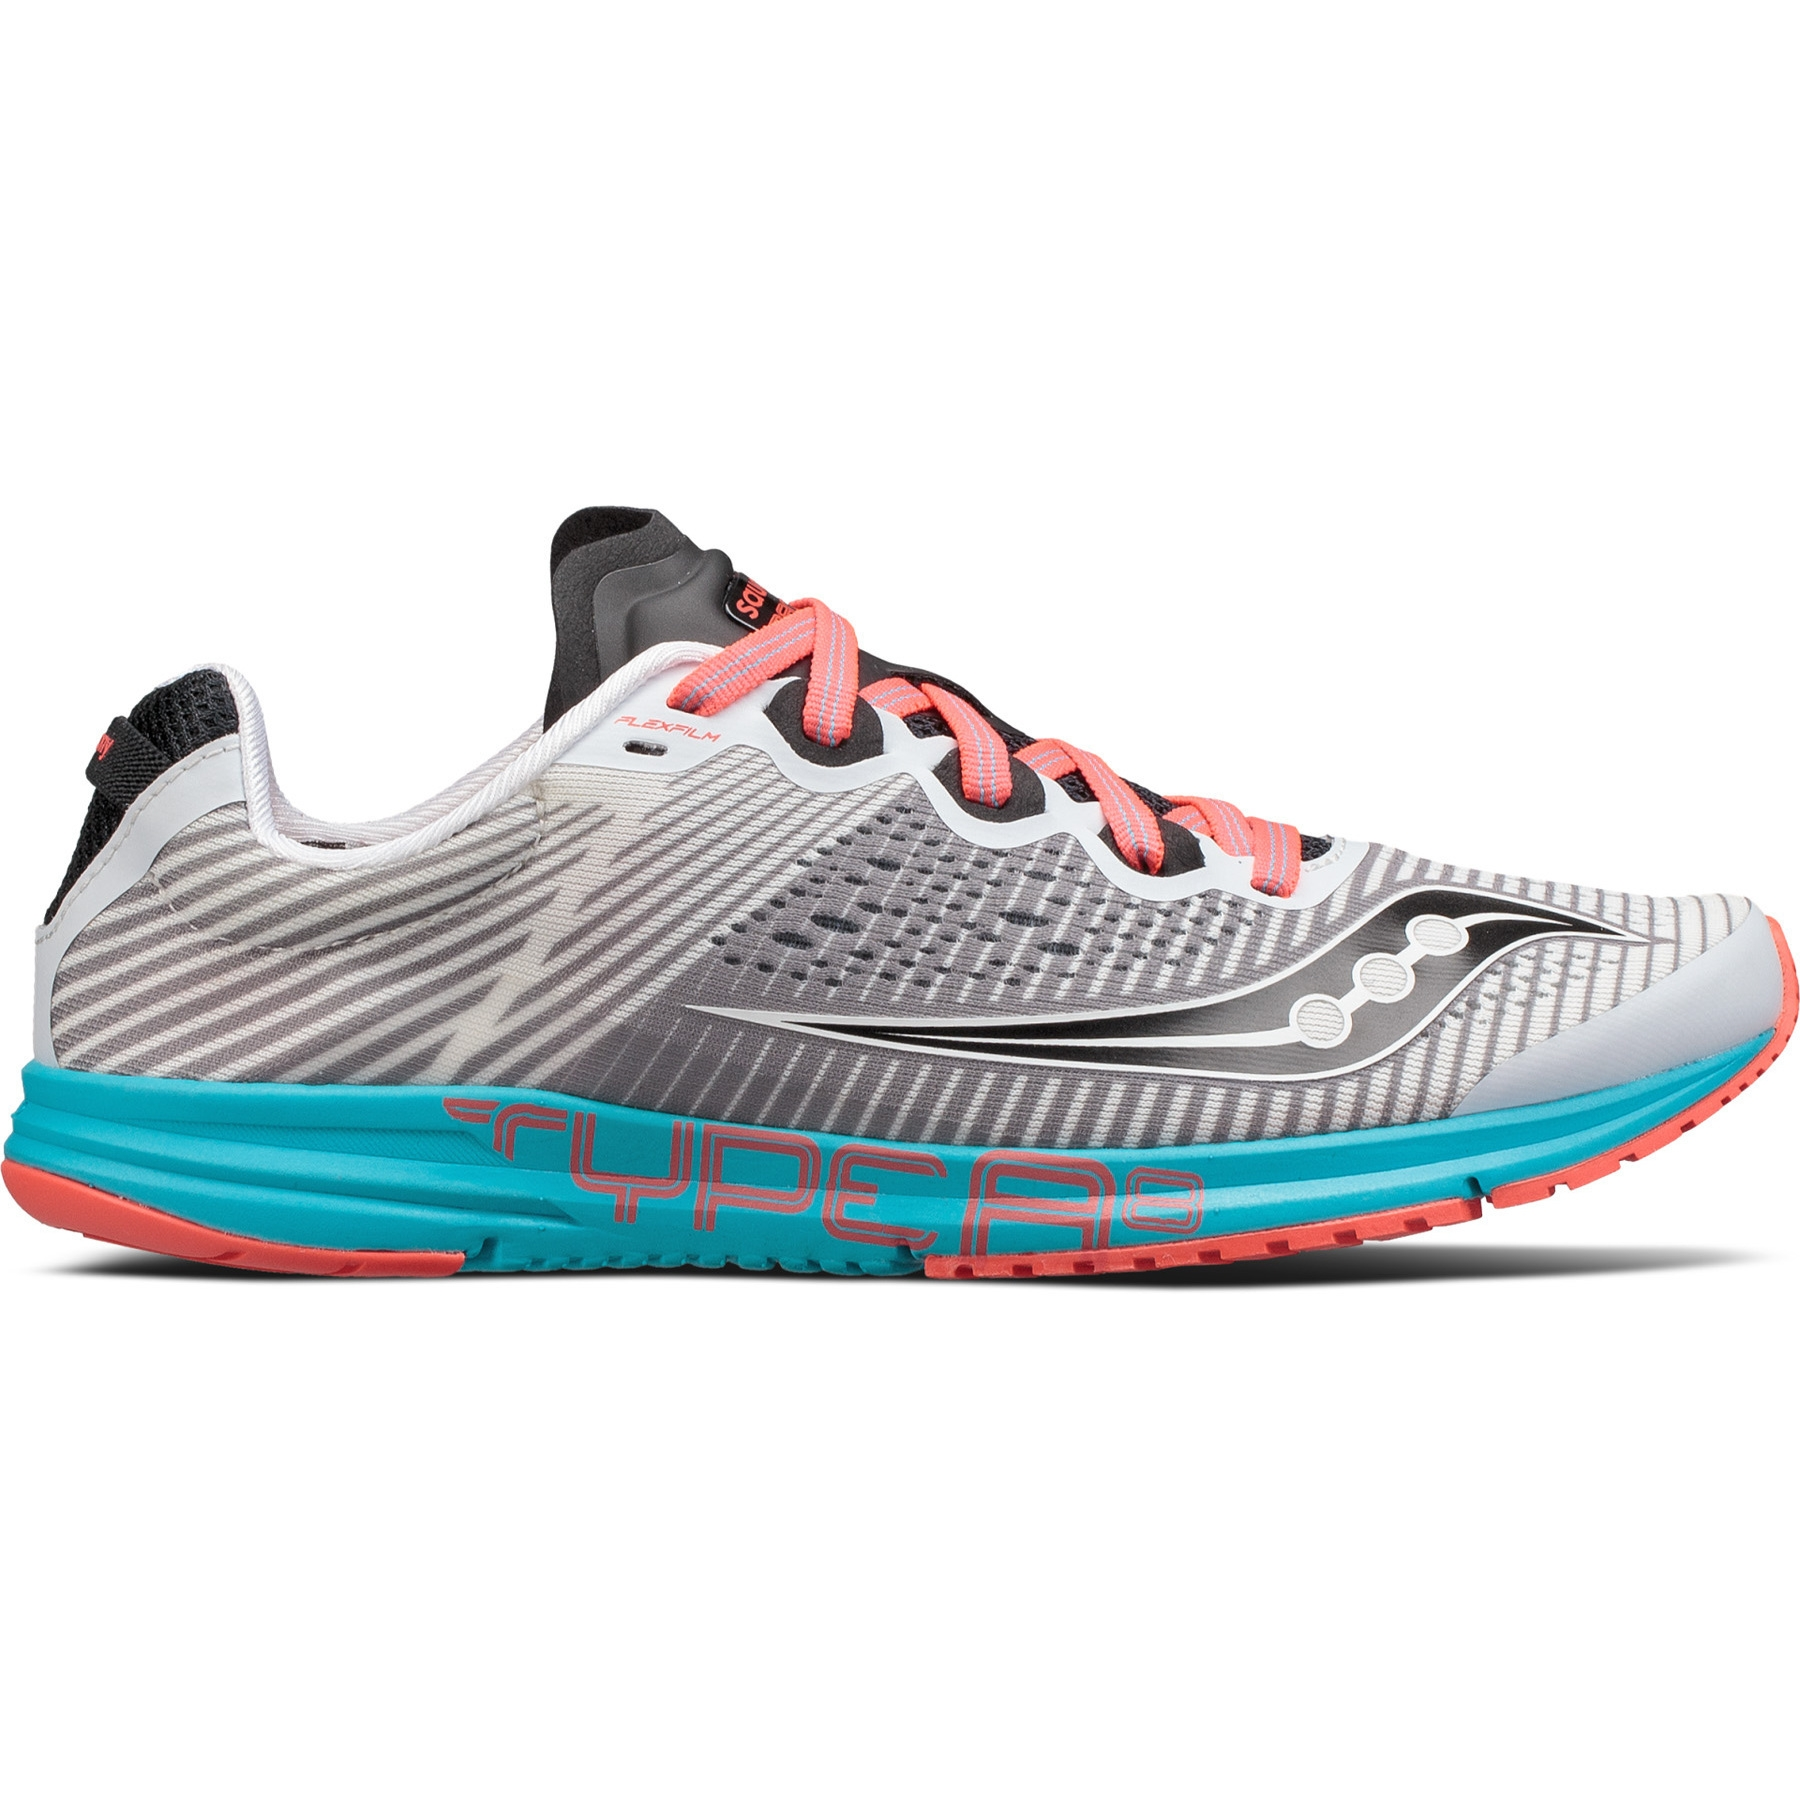 Chaussures femme Saucony Type A 8